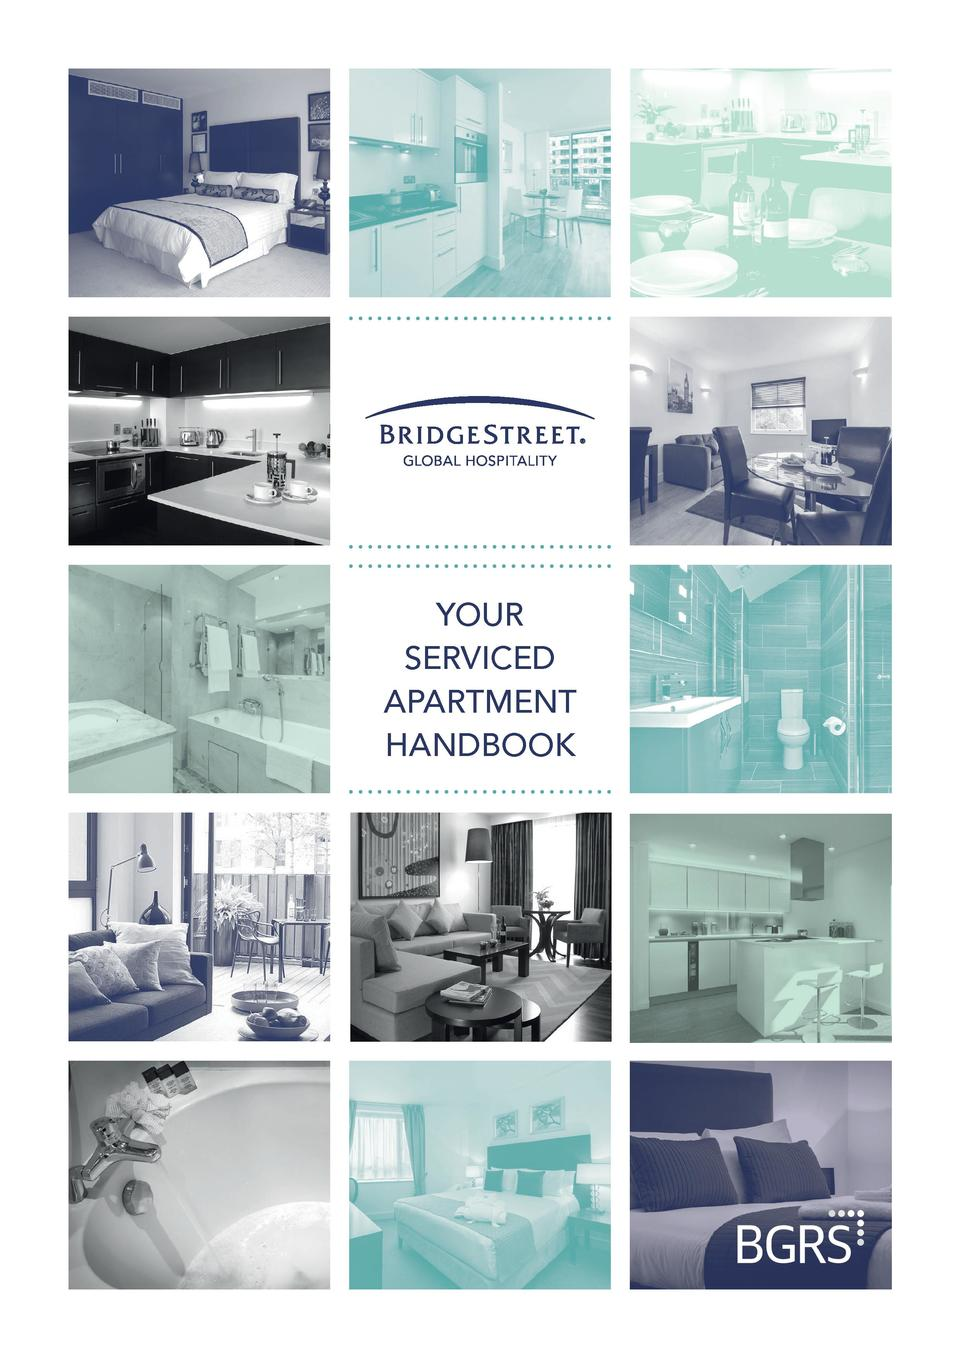 YOUR SERVICED APARTMENT HANDBOOK